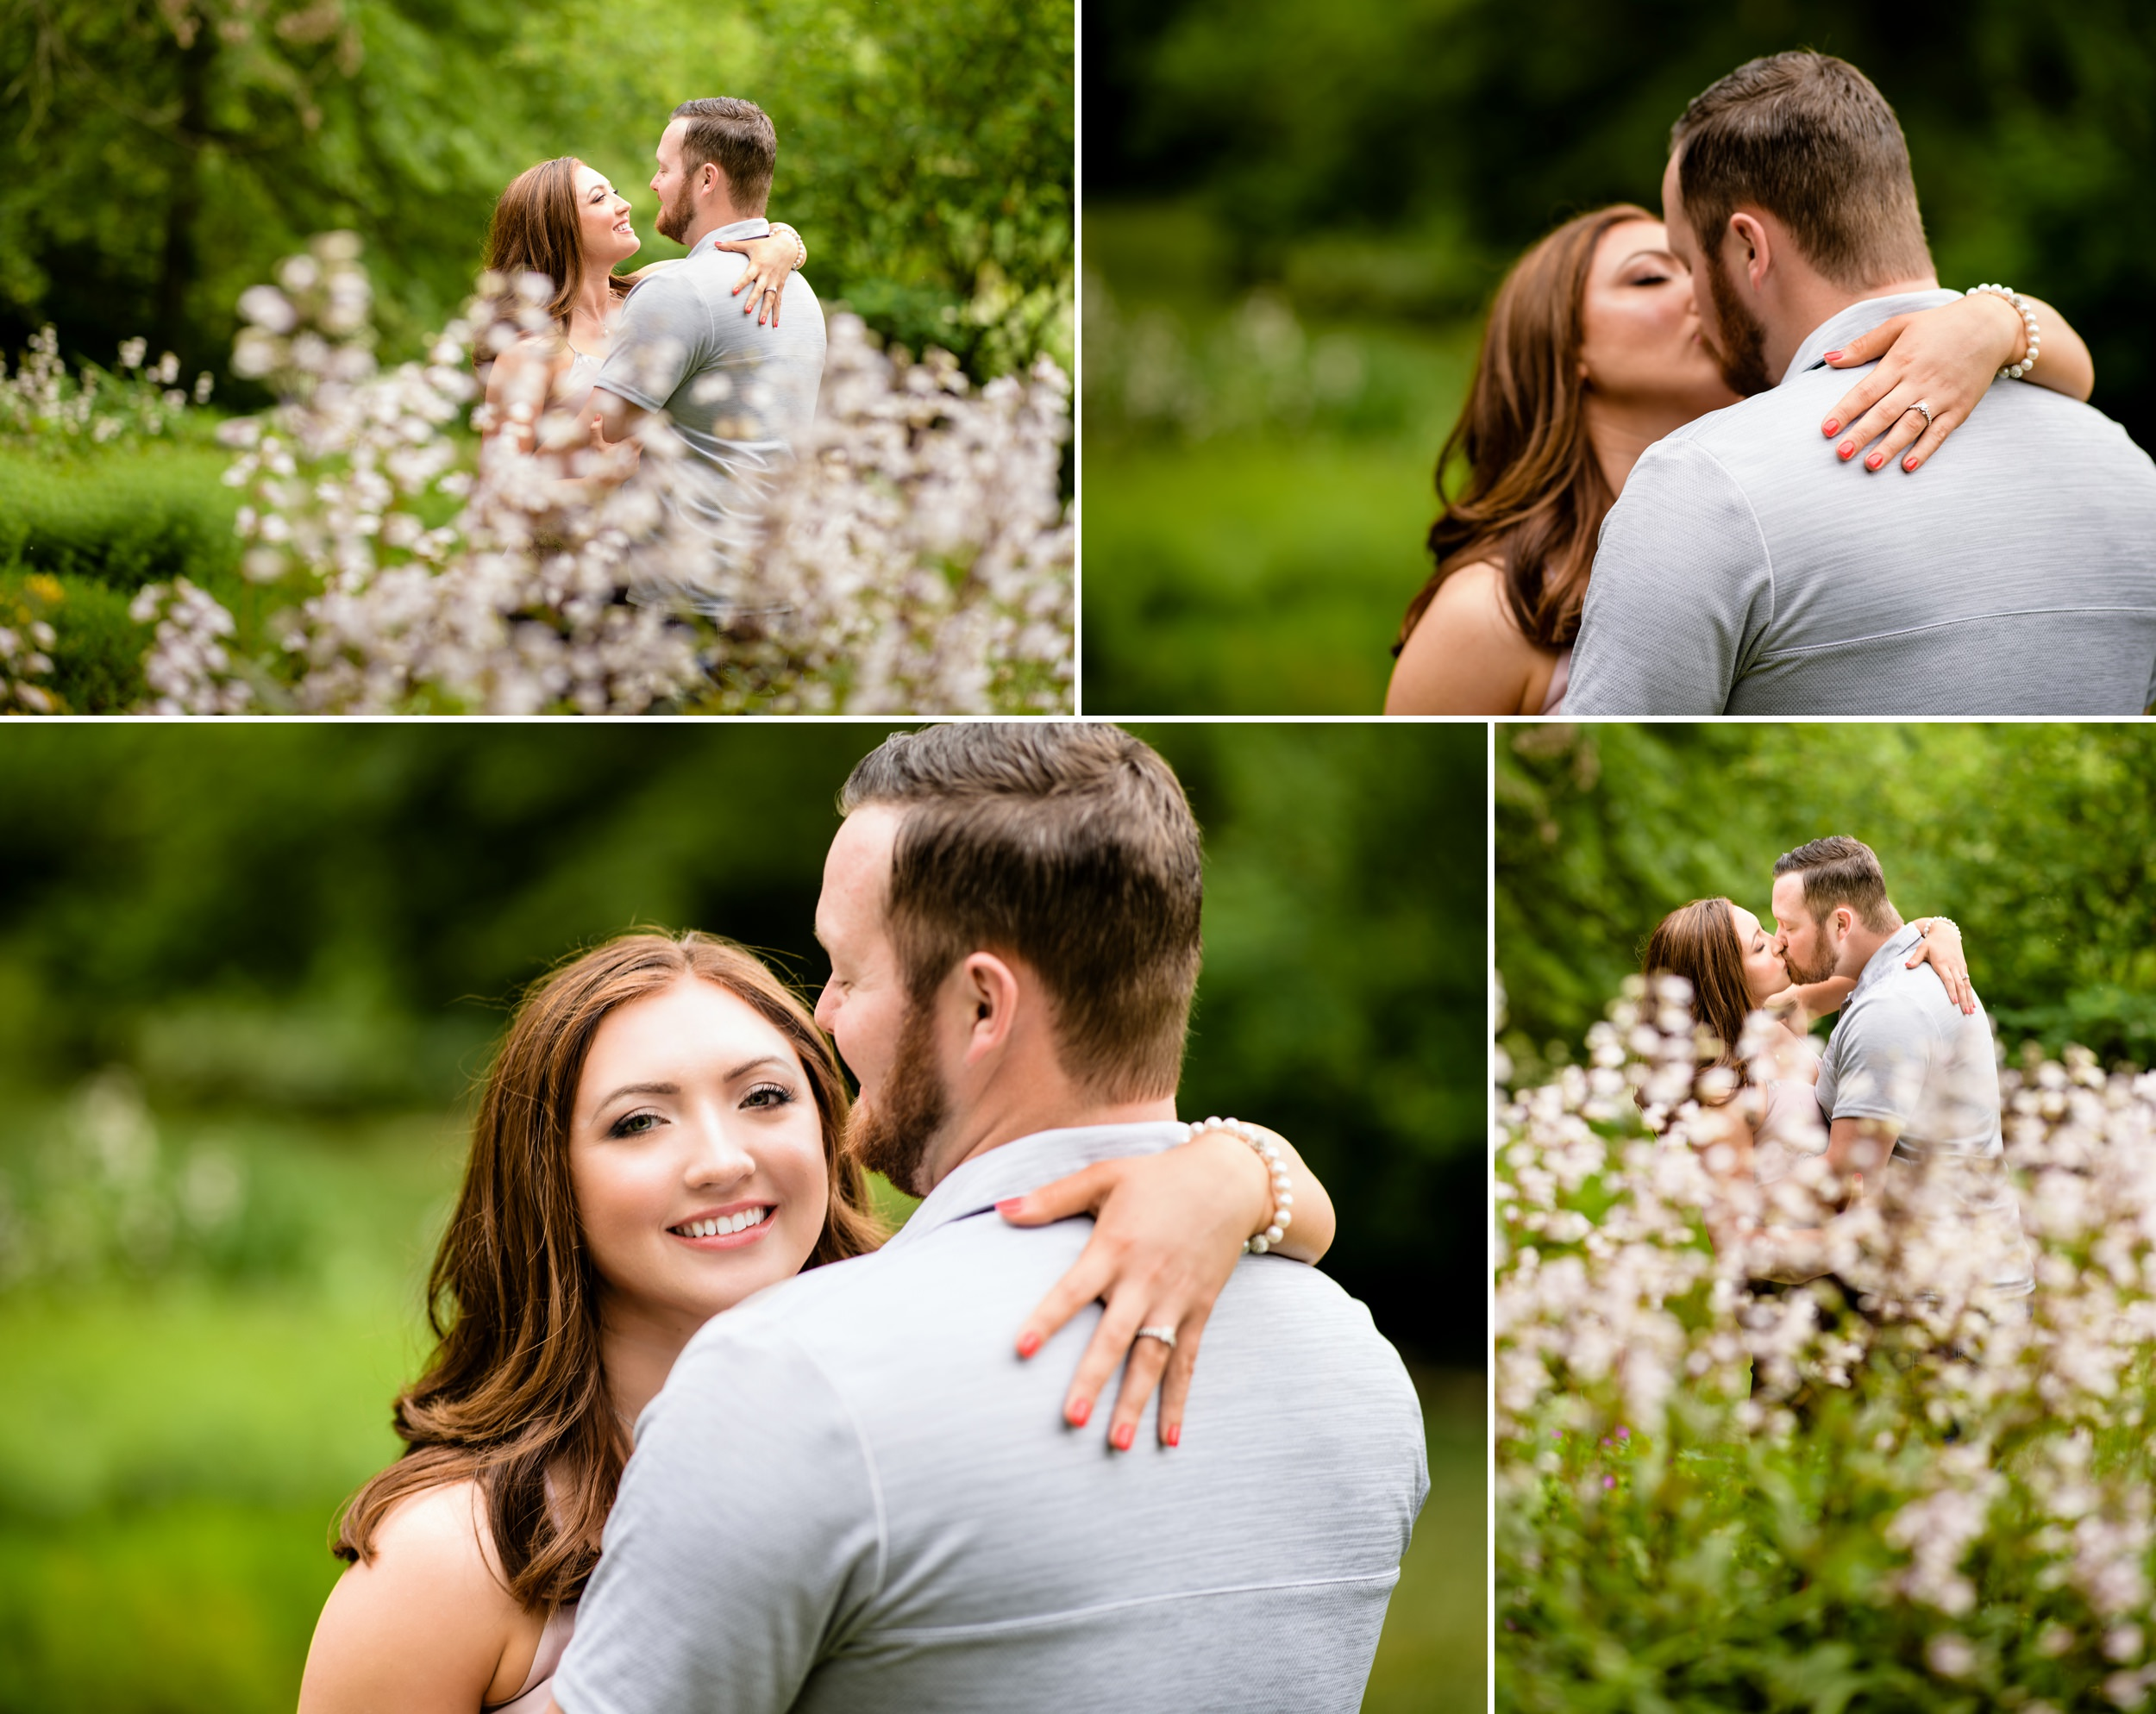 Engagement pictures among the beds of flowers at Gabis Arboretum.